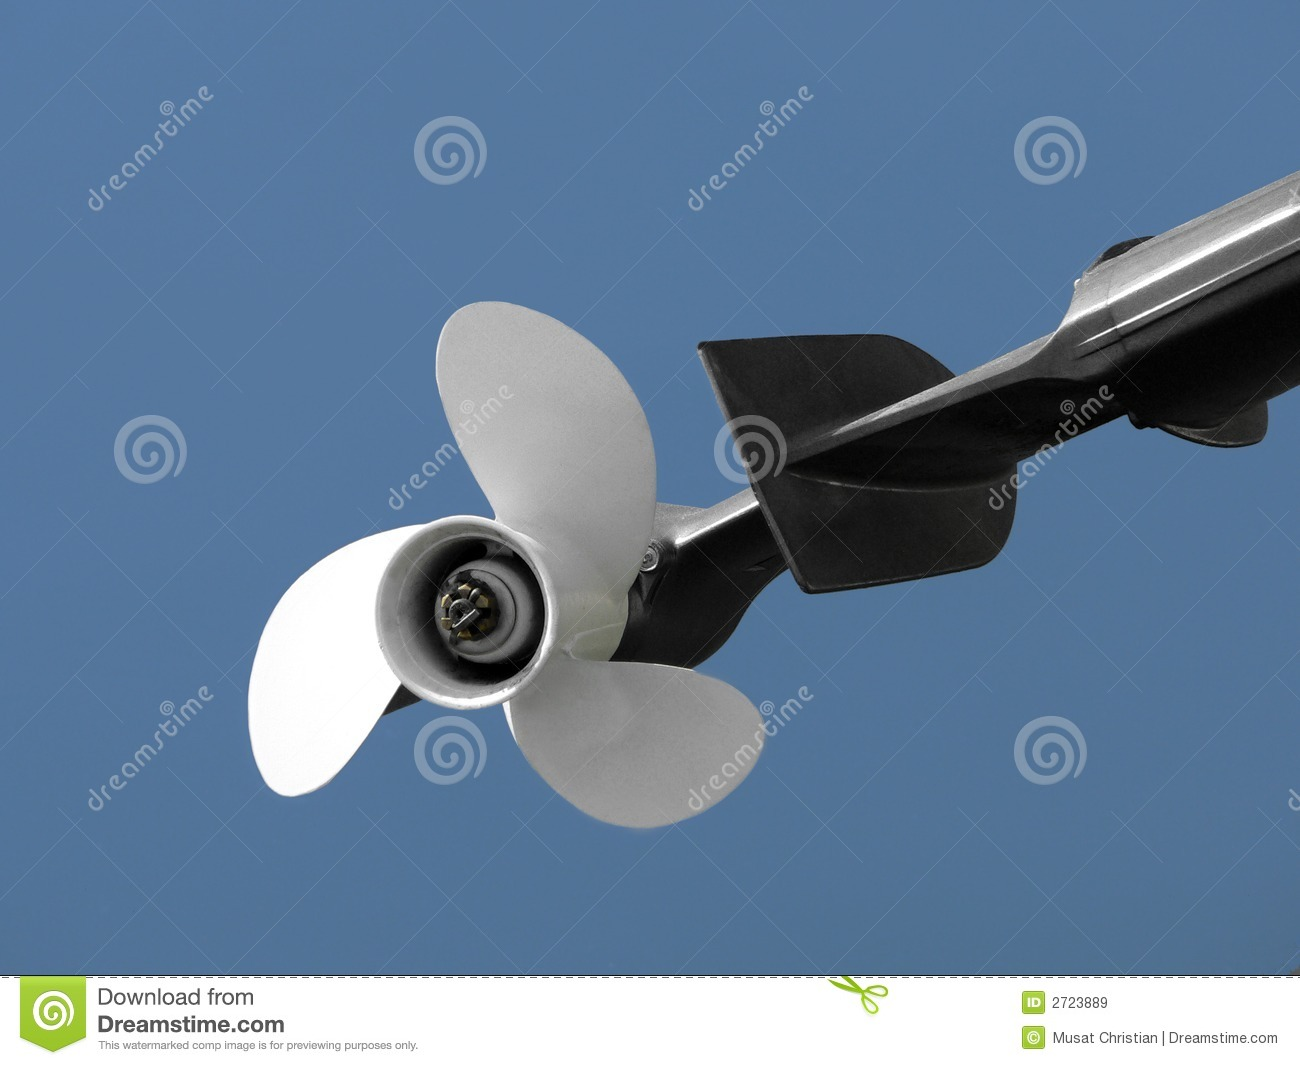 Propeller Of Boat Royalty Free Stock Images - Image: 2723889